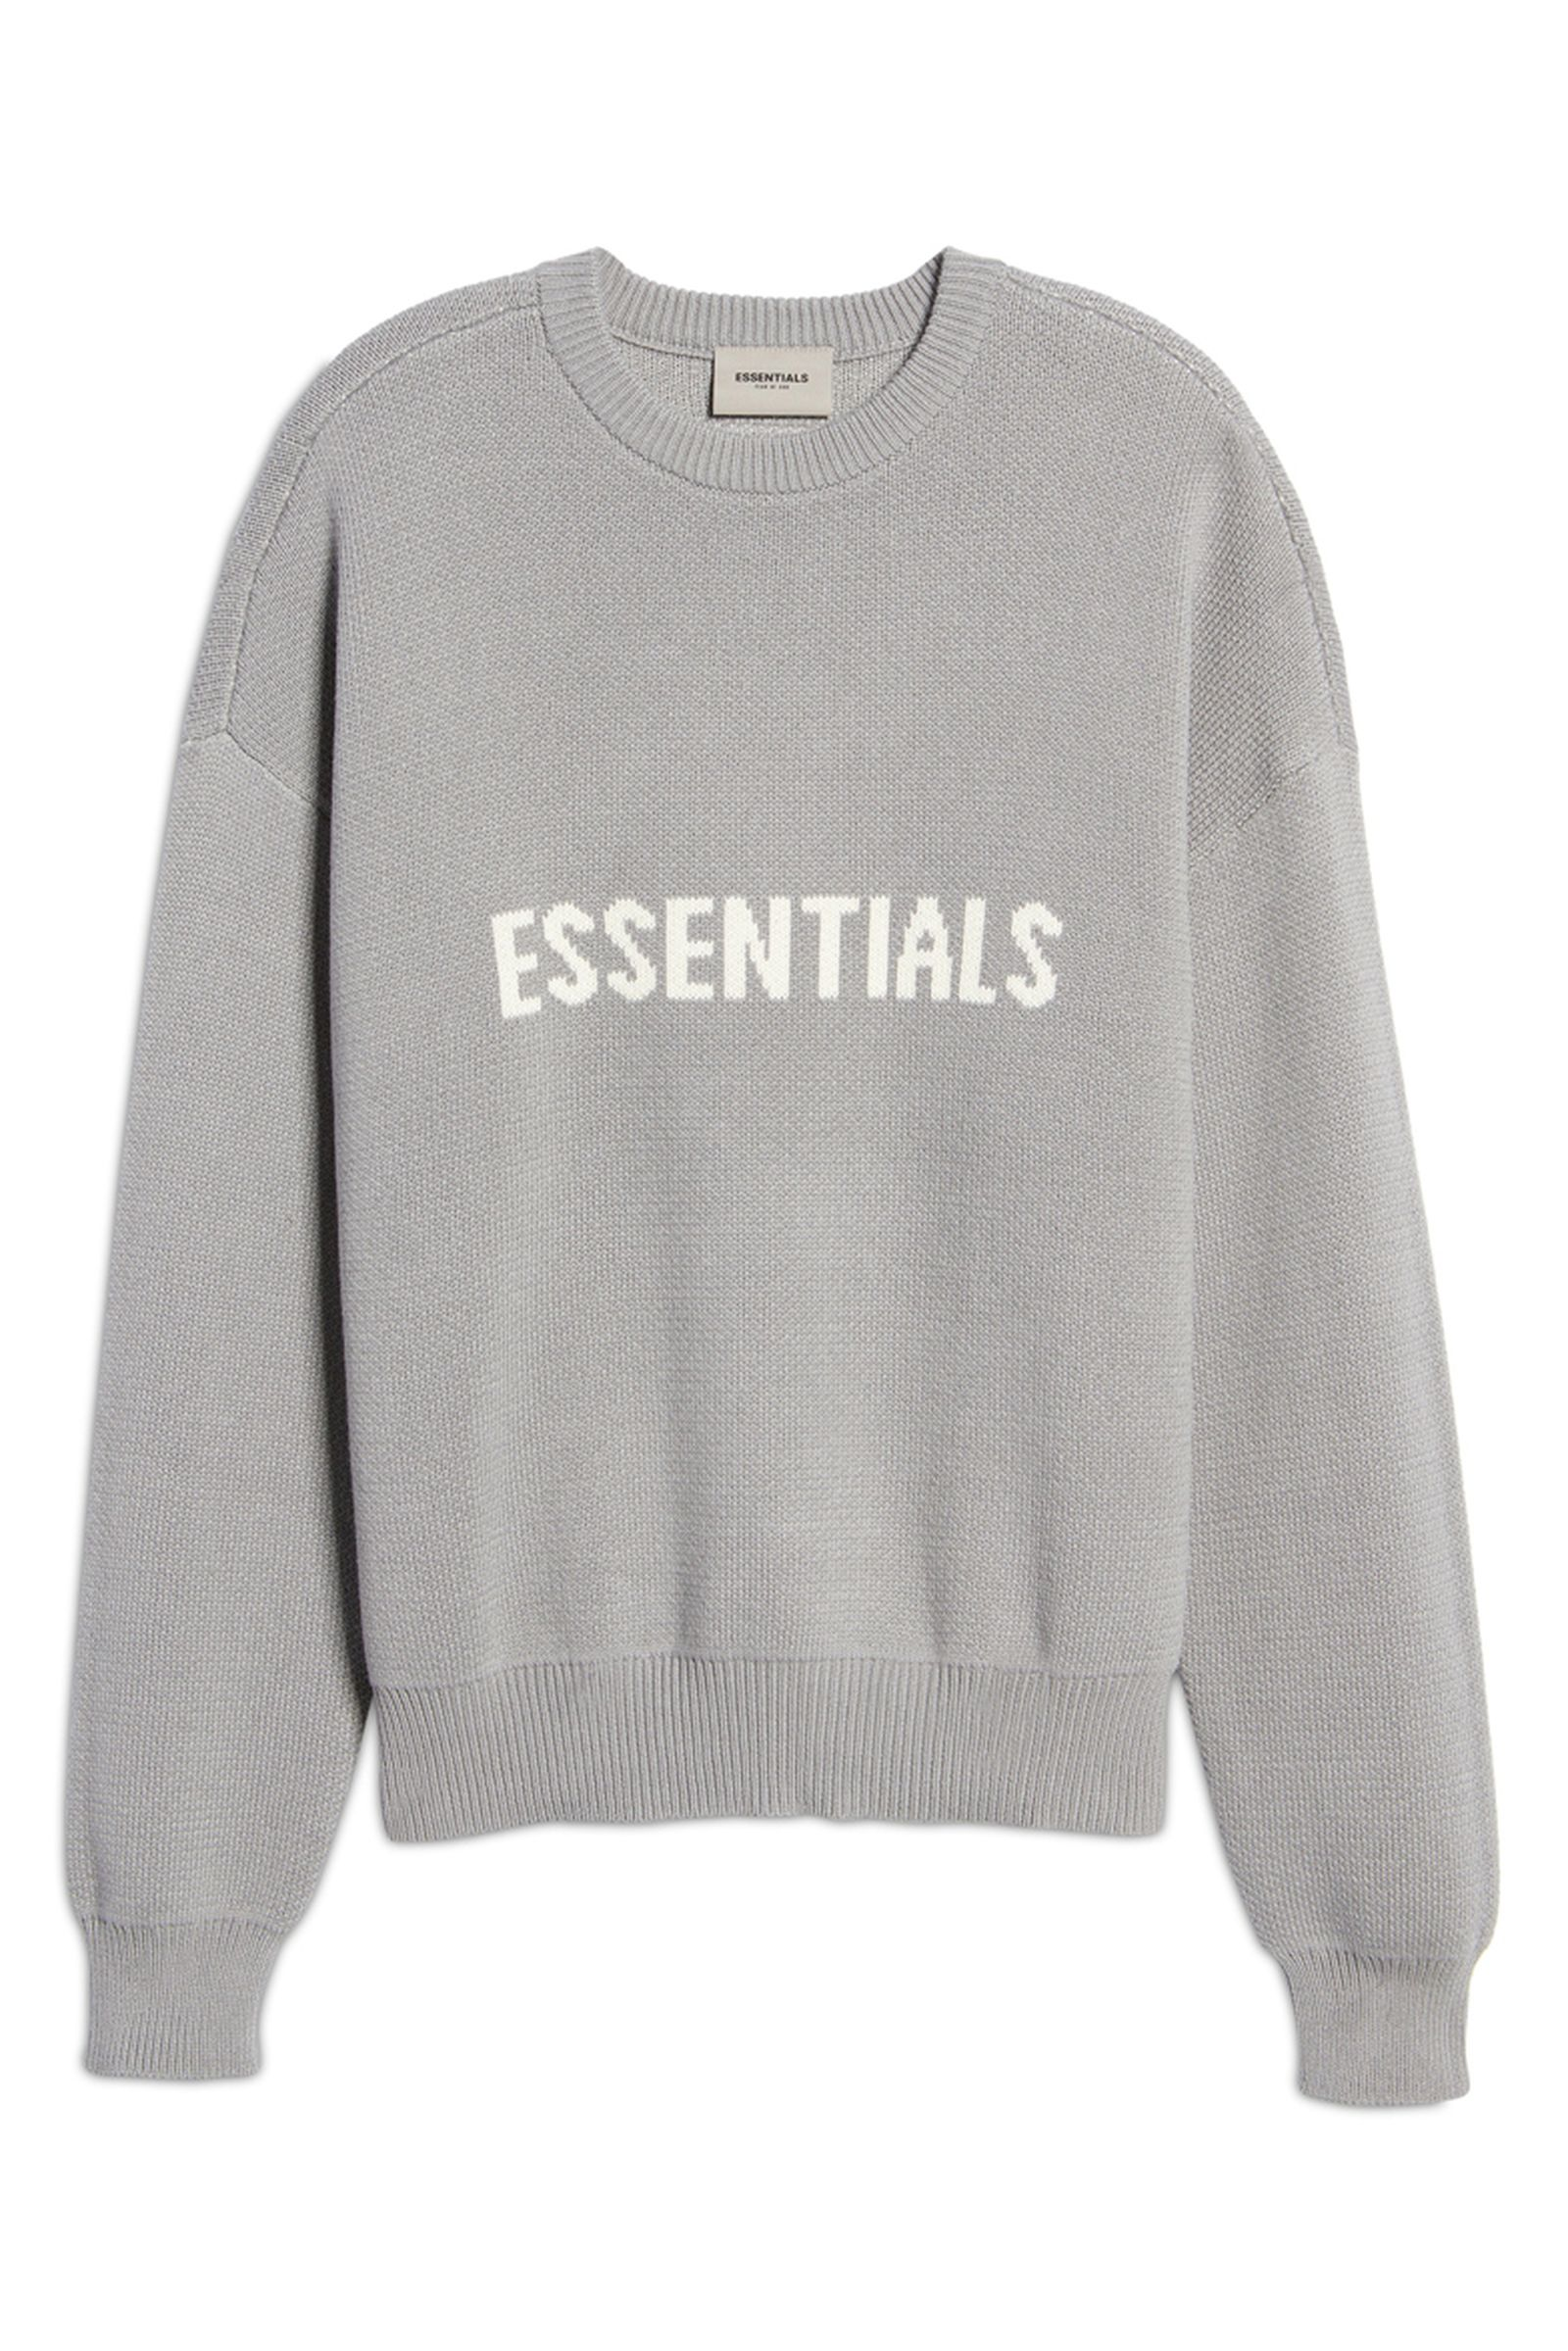 fear of god essentials nordstrom exclusive (6)